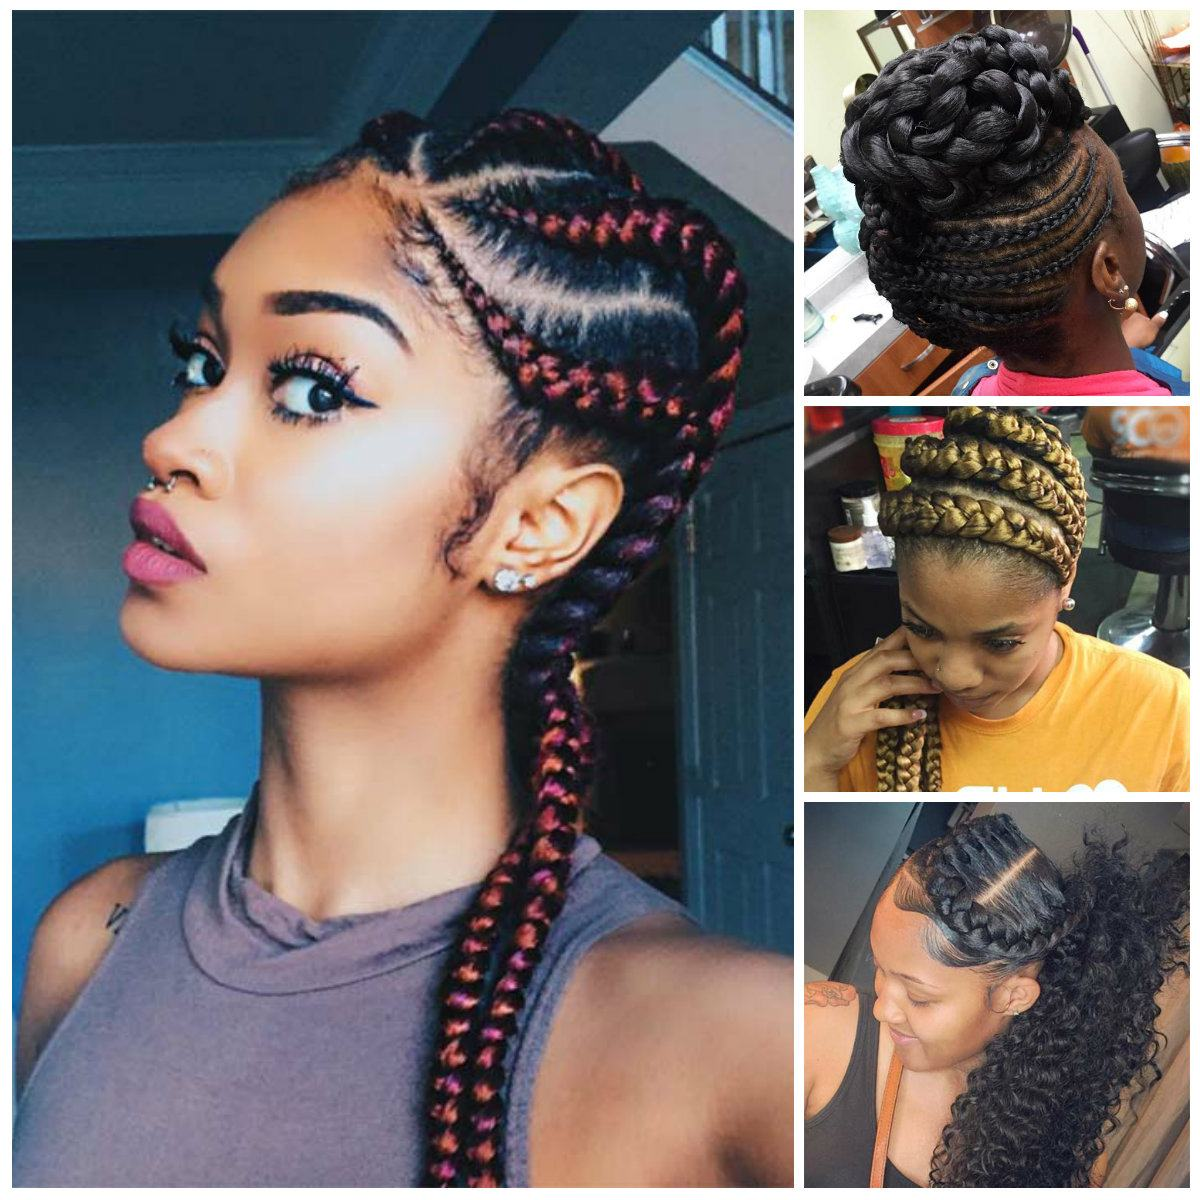 Women Braided Hairstyles 2018